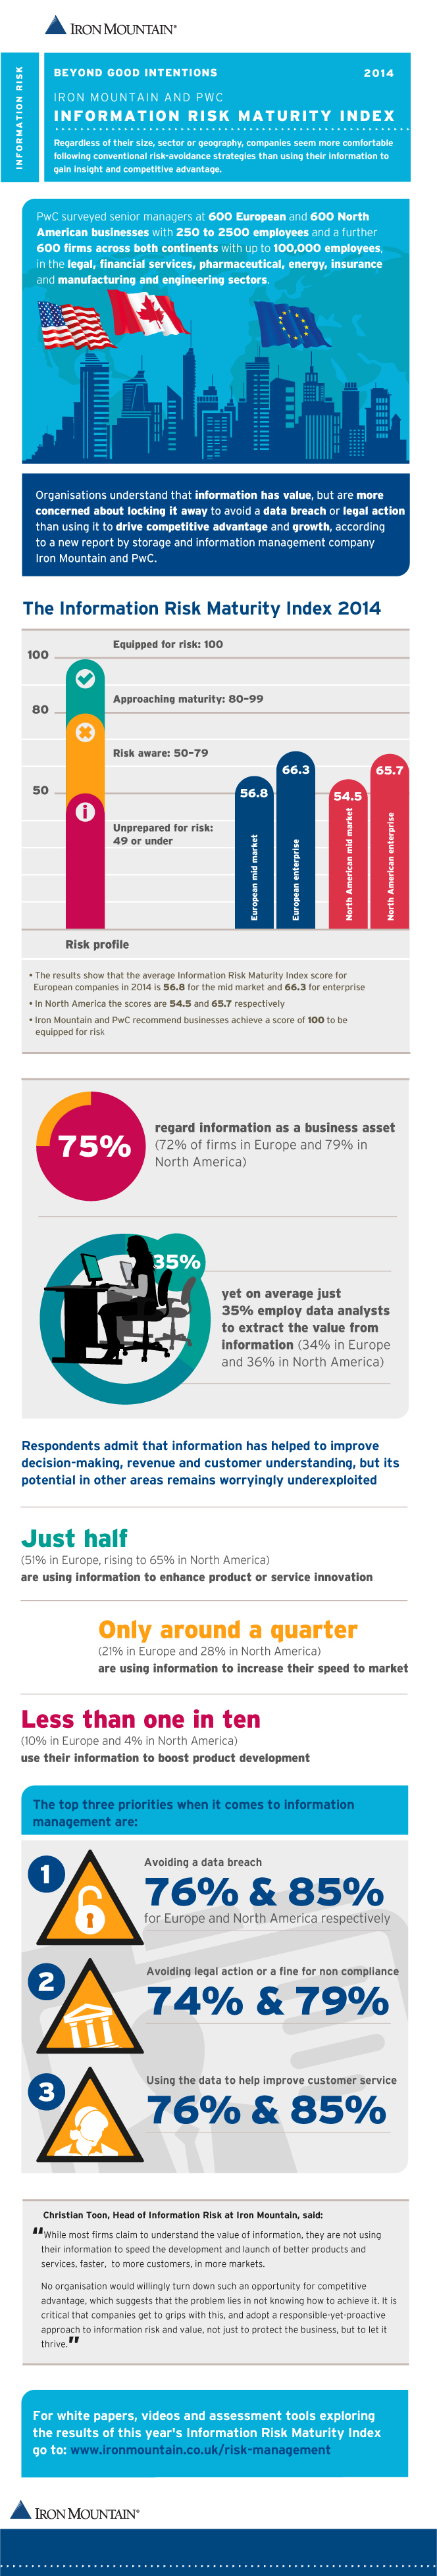 Iron Mountain and PwC surveyed enterprise and mid-market sized organizations in North America and Western Europe, asking about their information management practices. The results showed that they prioritize security over using that information for competitive advantage. (Graphic: Business Wire)